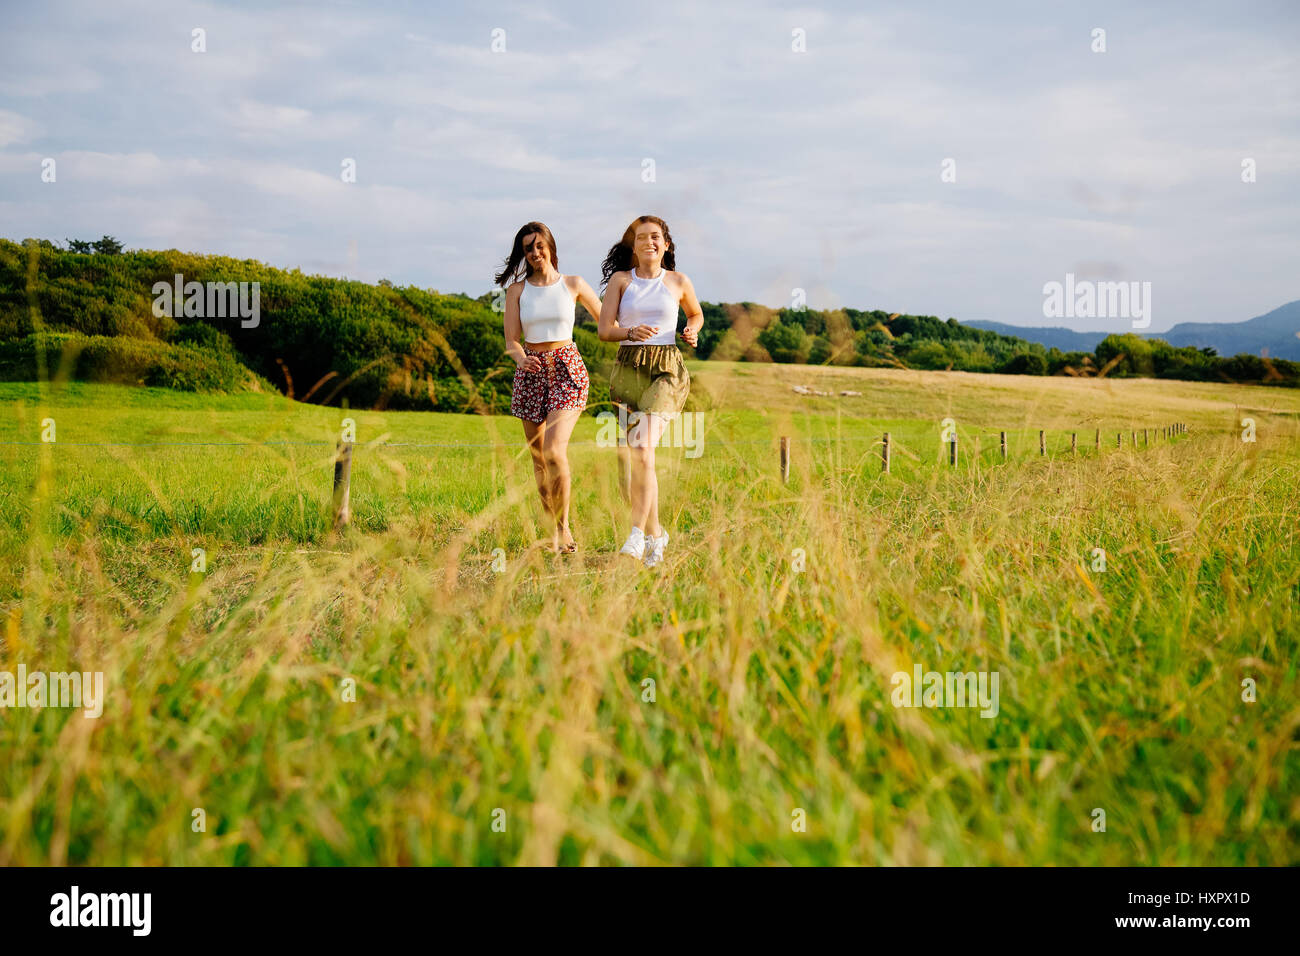 Funny female friends running in a meadow in summer - Stock Image